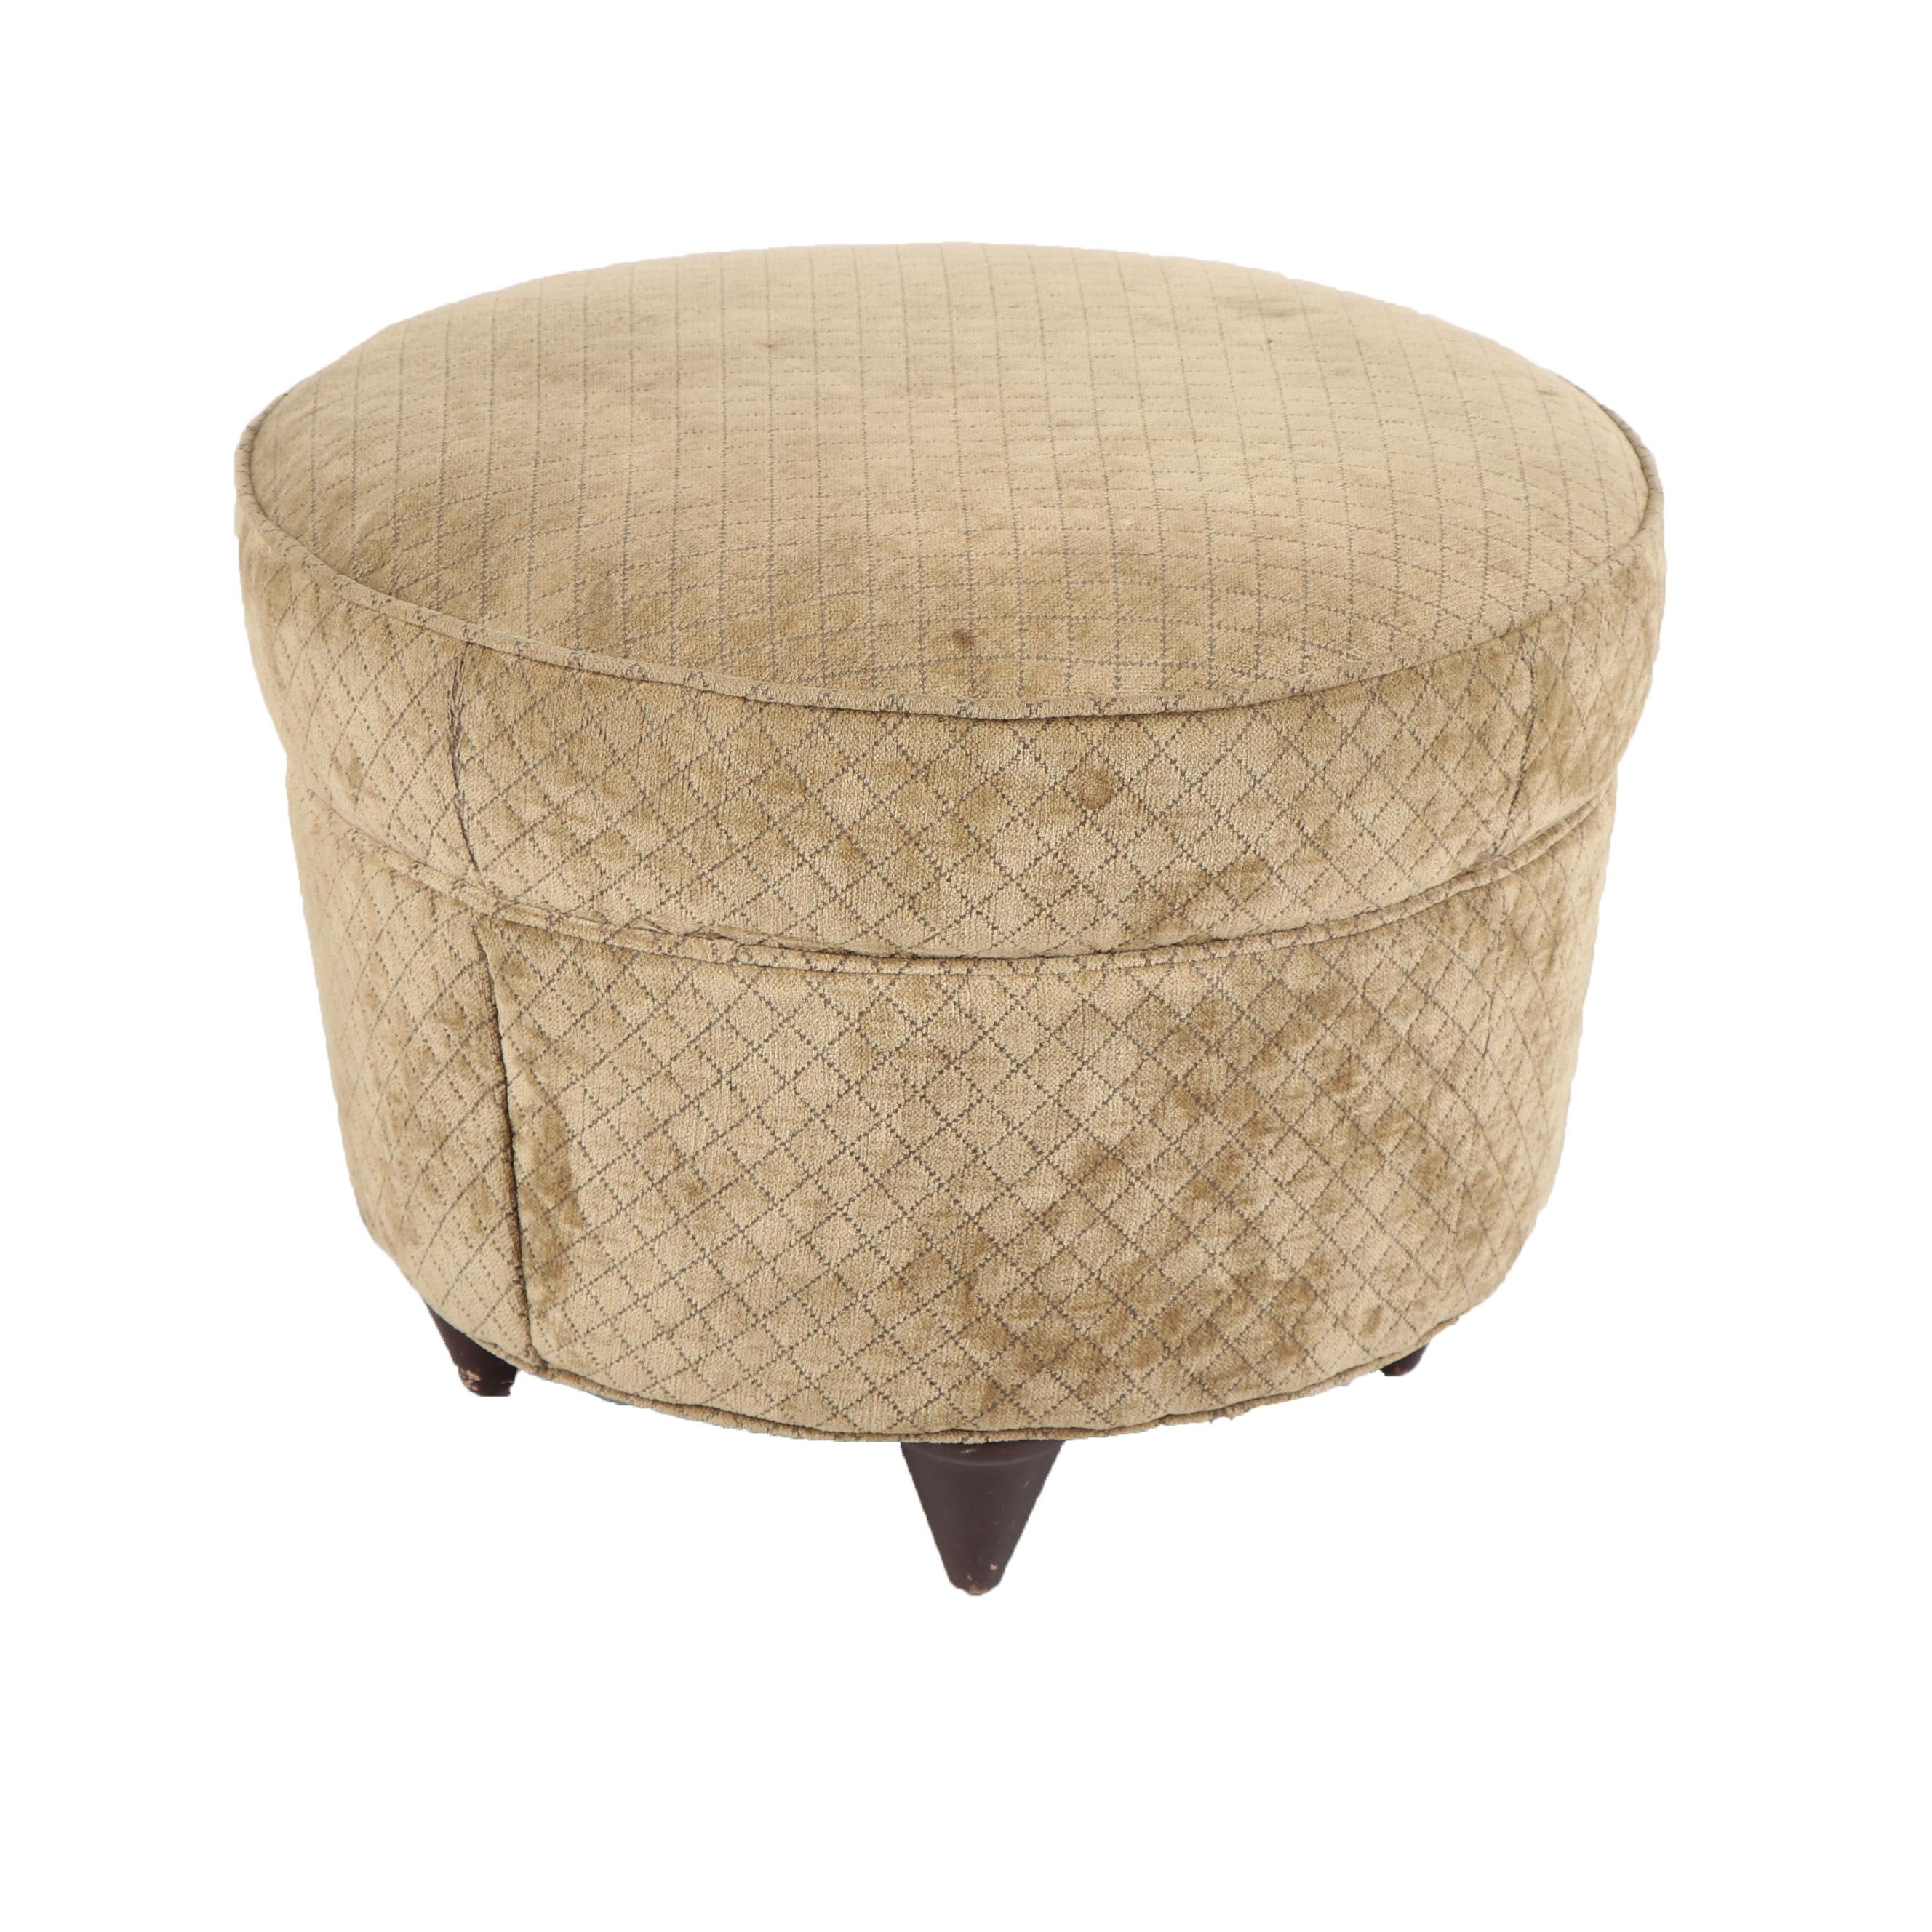 Taupe Upholstered Circular Footstool